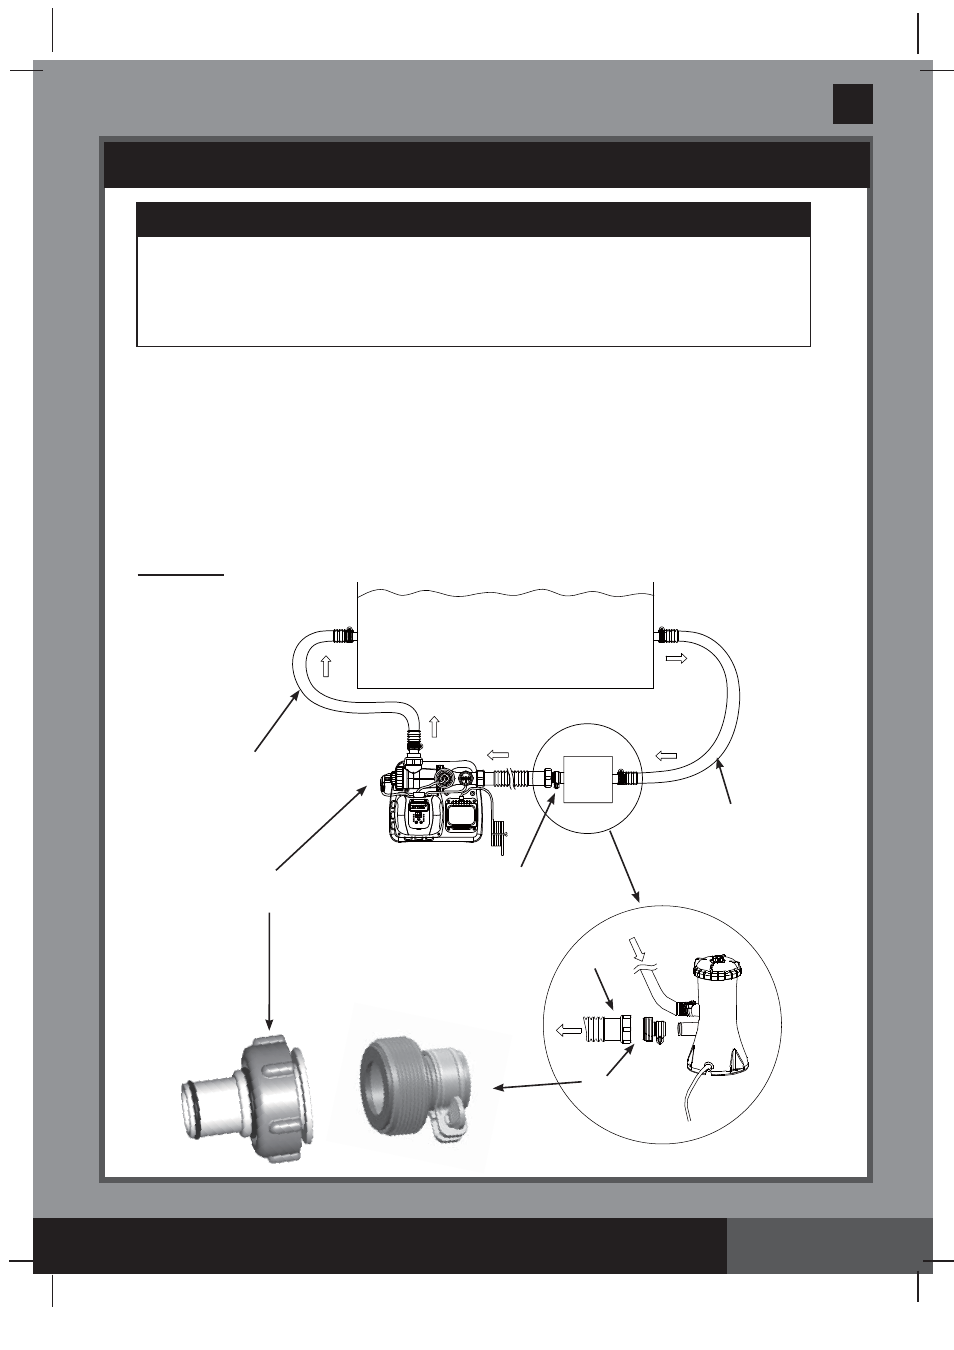 Save These Instructions Important Setup Instructions